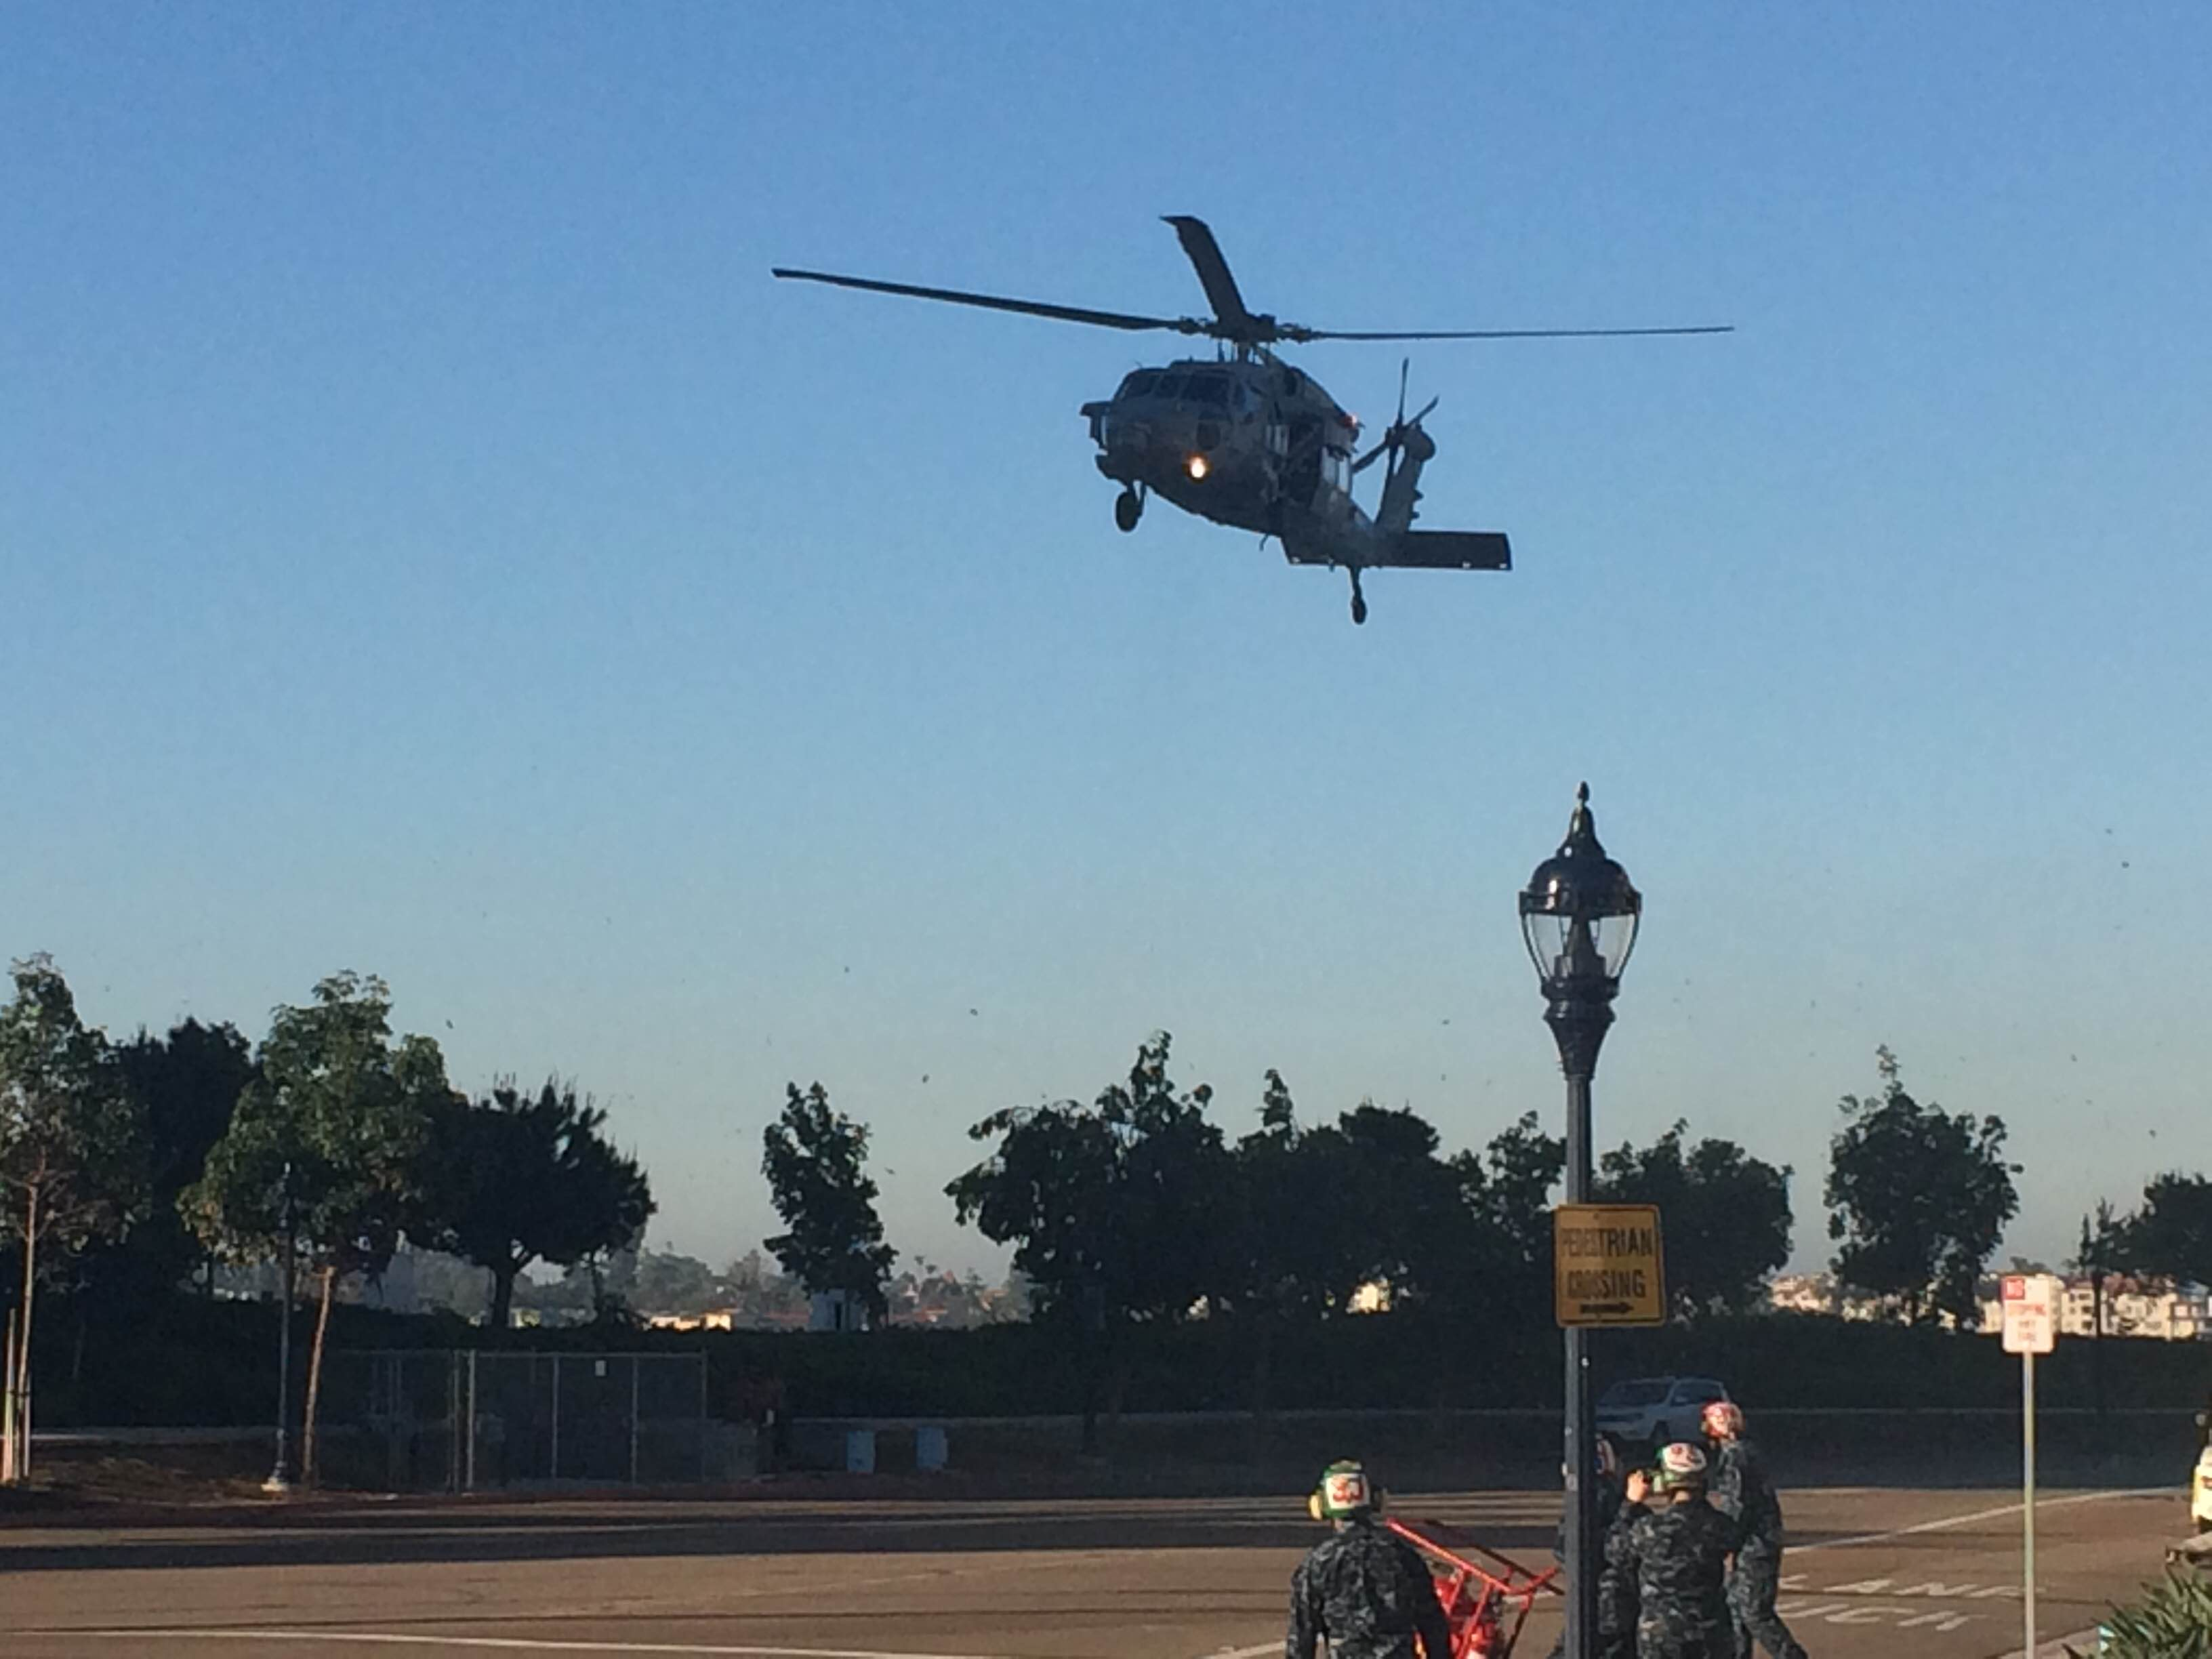 """A MH-60S Knighthawk from Helicopter Sea Combat Squadron Eight""""Eightballers"""" (HSC-8) lands on Feb. 7, 2015 outside the San Diego Convention Center. Photo Courtesy Jennifer Miller"""